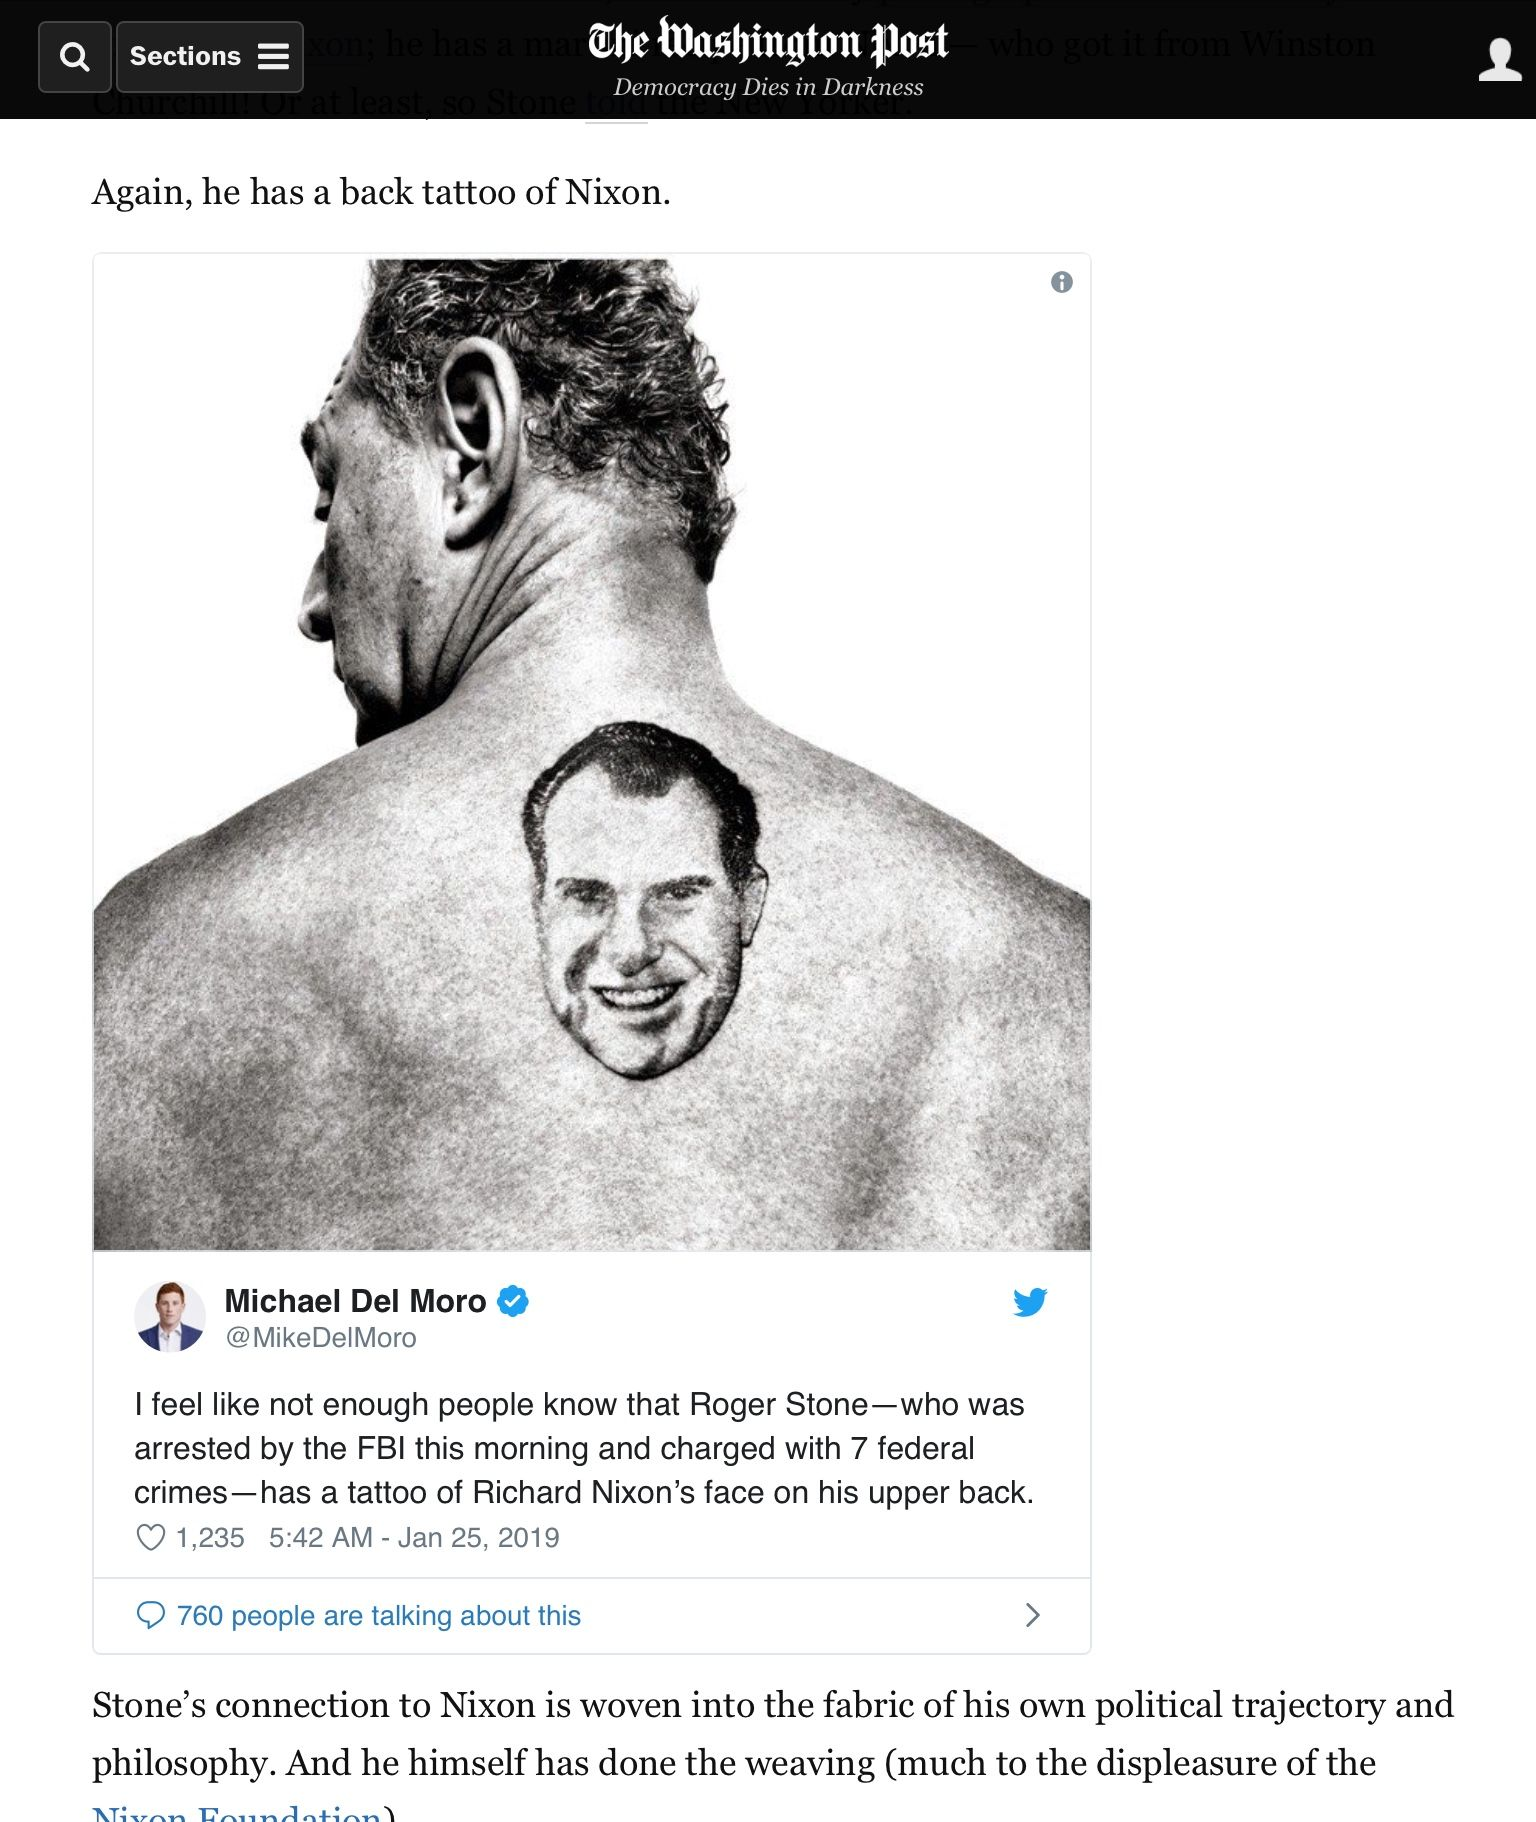 Nixon Marble Face: Why Roger Stone Is Always Pictured In A Pose Richard Nixon